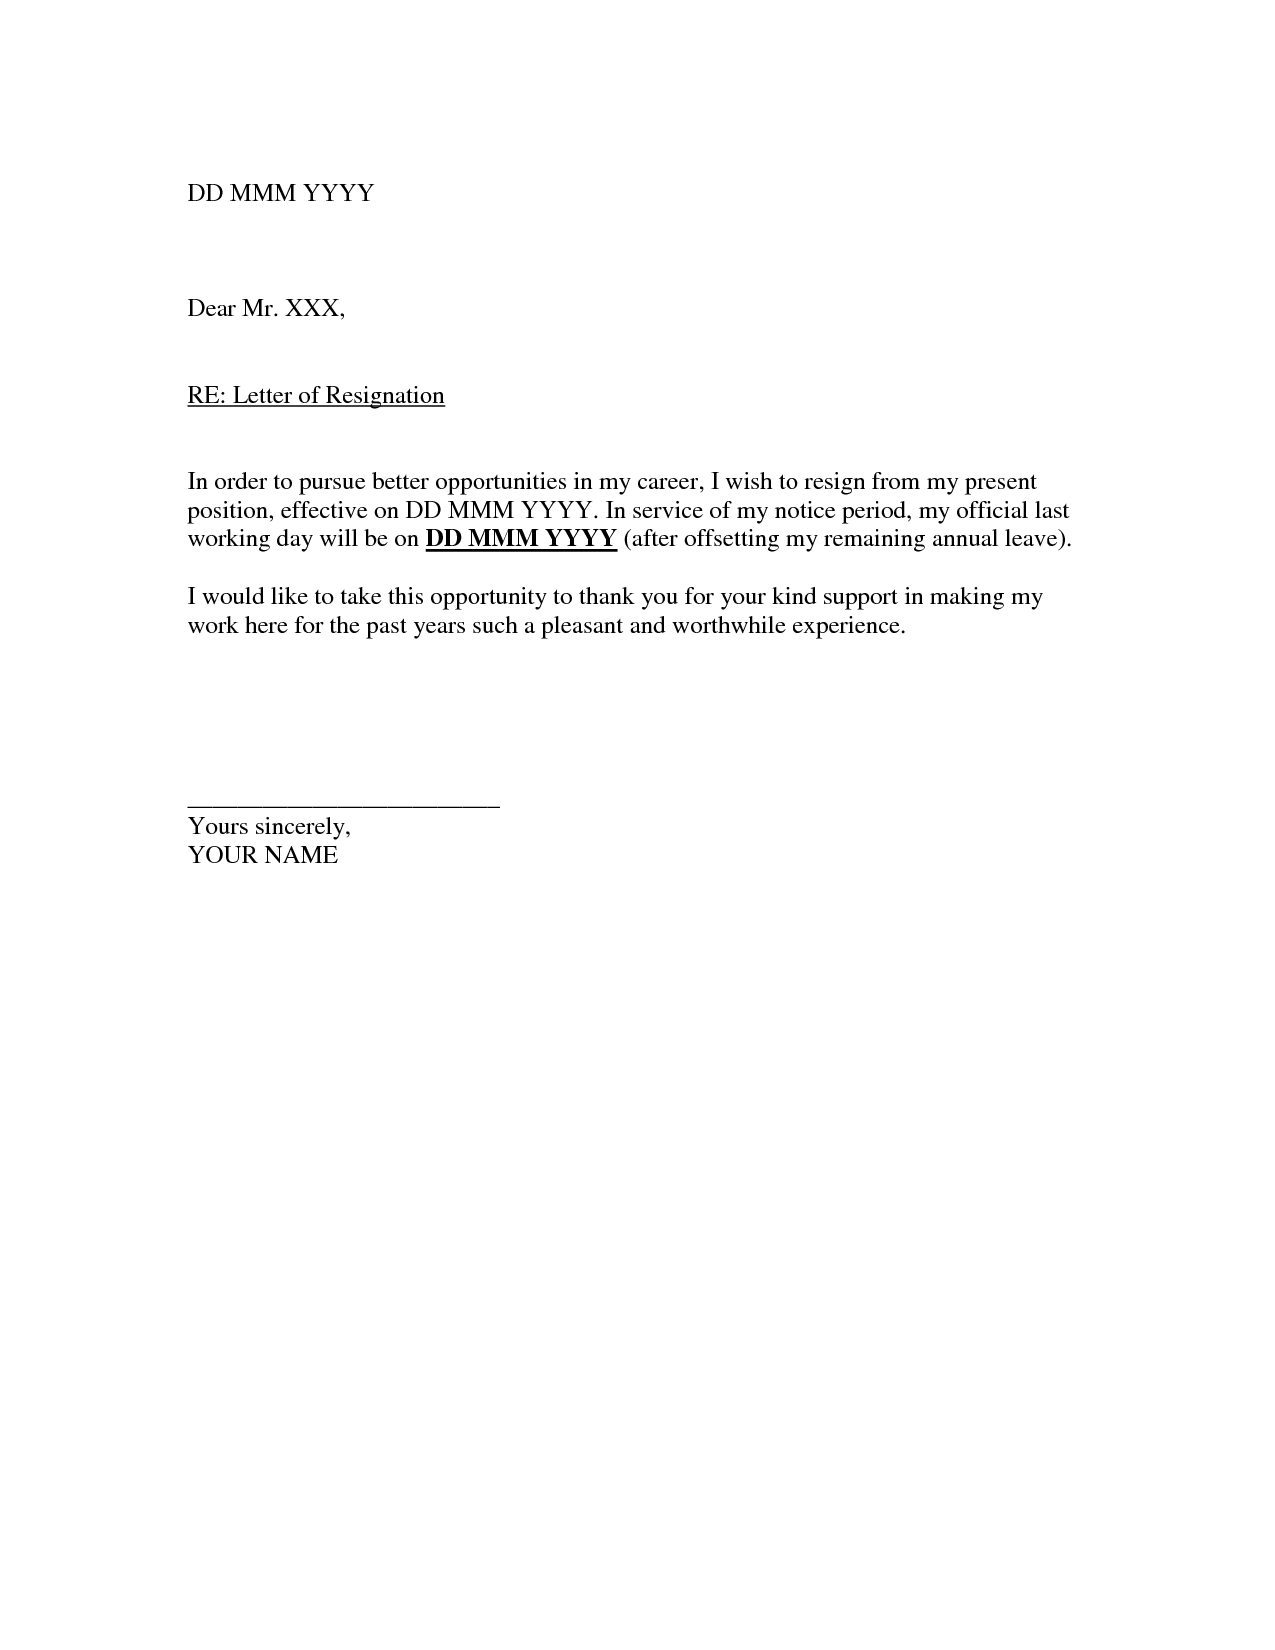 Related to resignation letter template letters of resignation related to resignation letter template letters of resignation templates formal resignation letter sample resignation letter altavistaventures Images